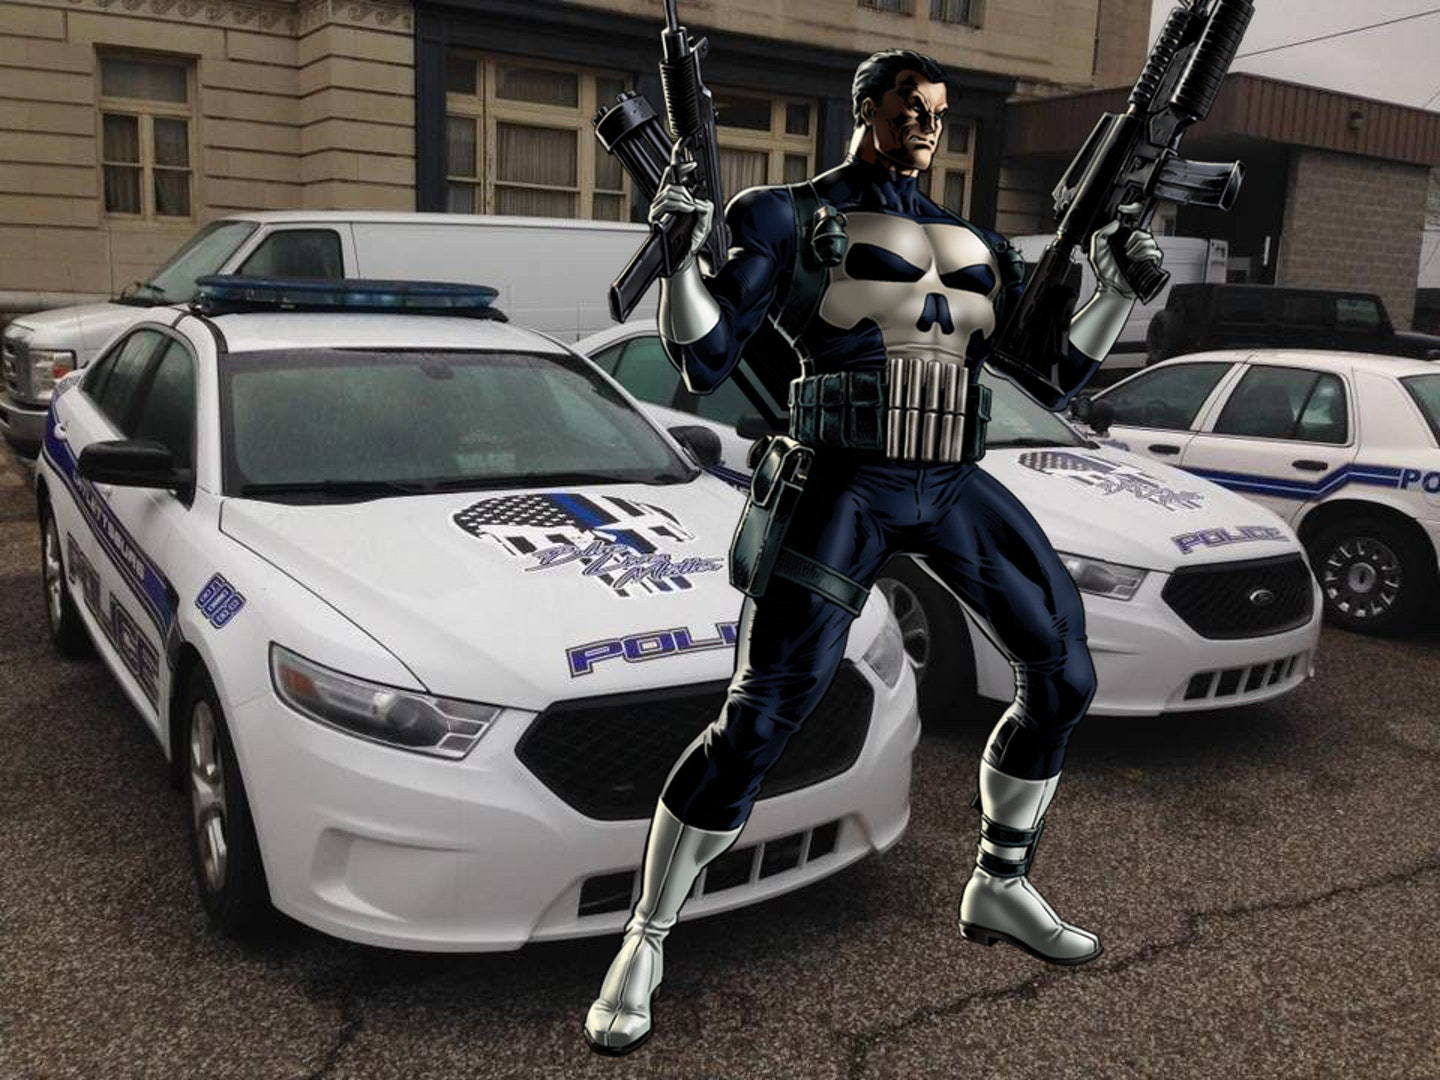 Cops Who Use Punisher Imagery Don't Know What They're Doing